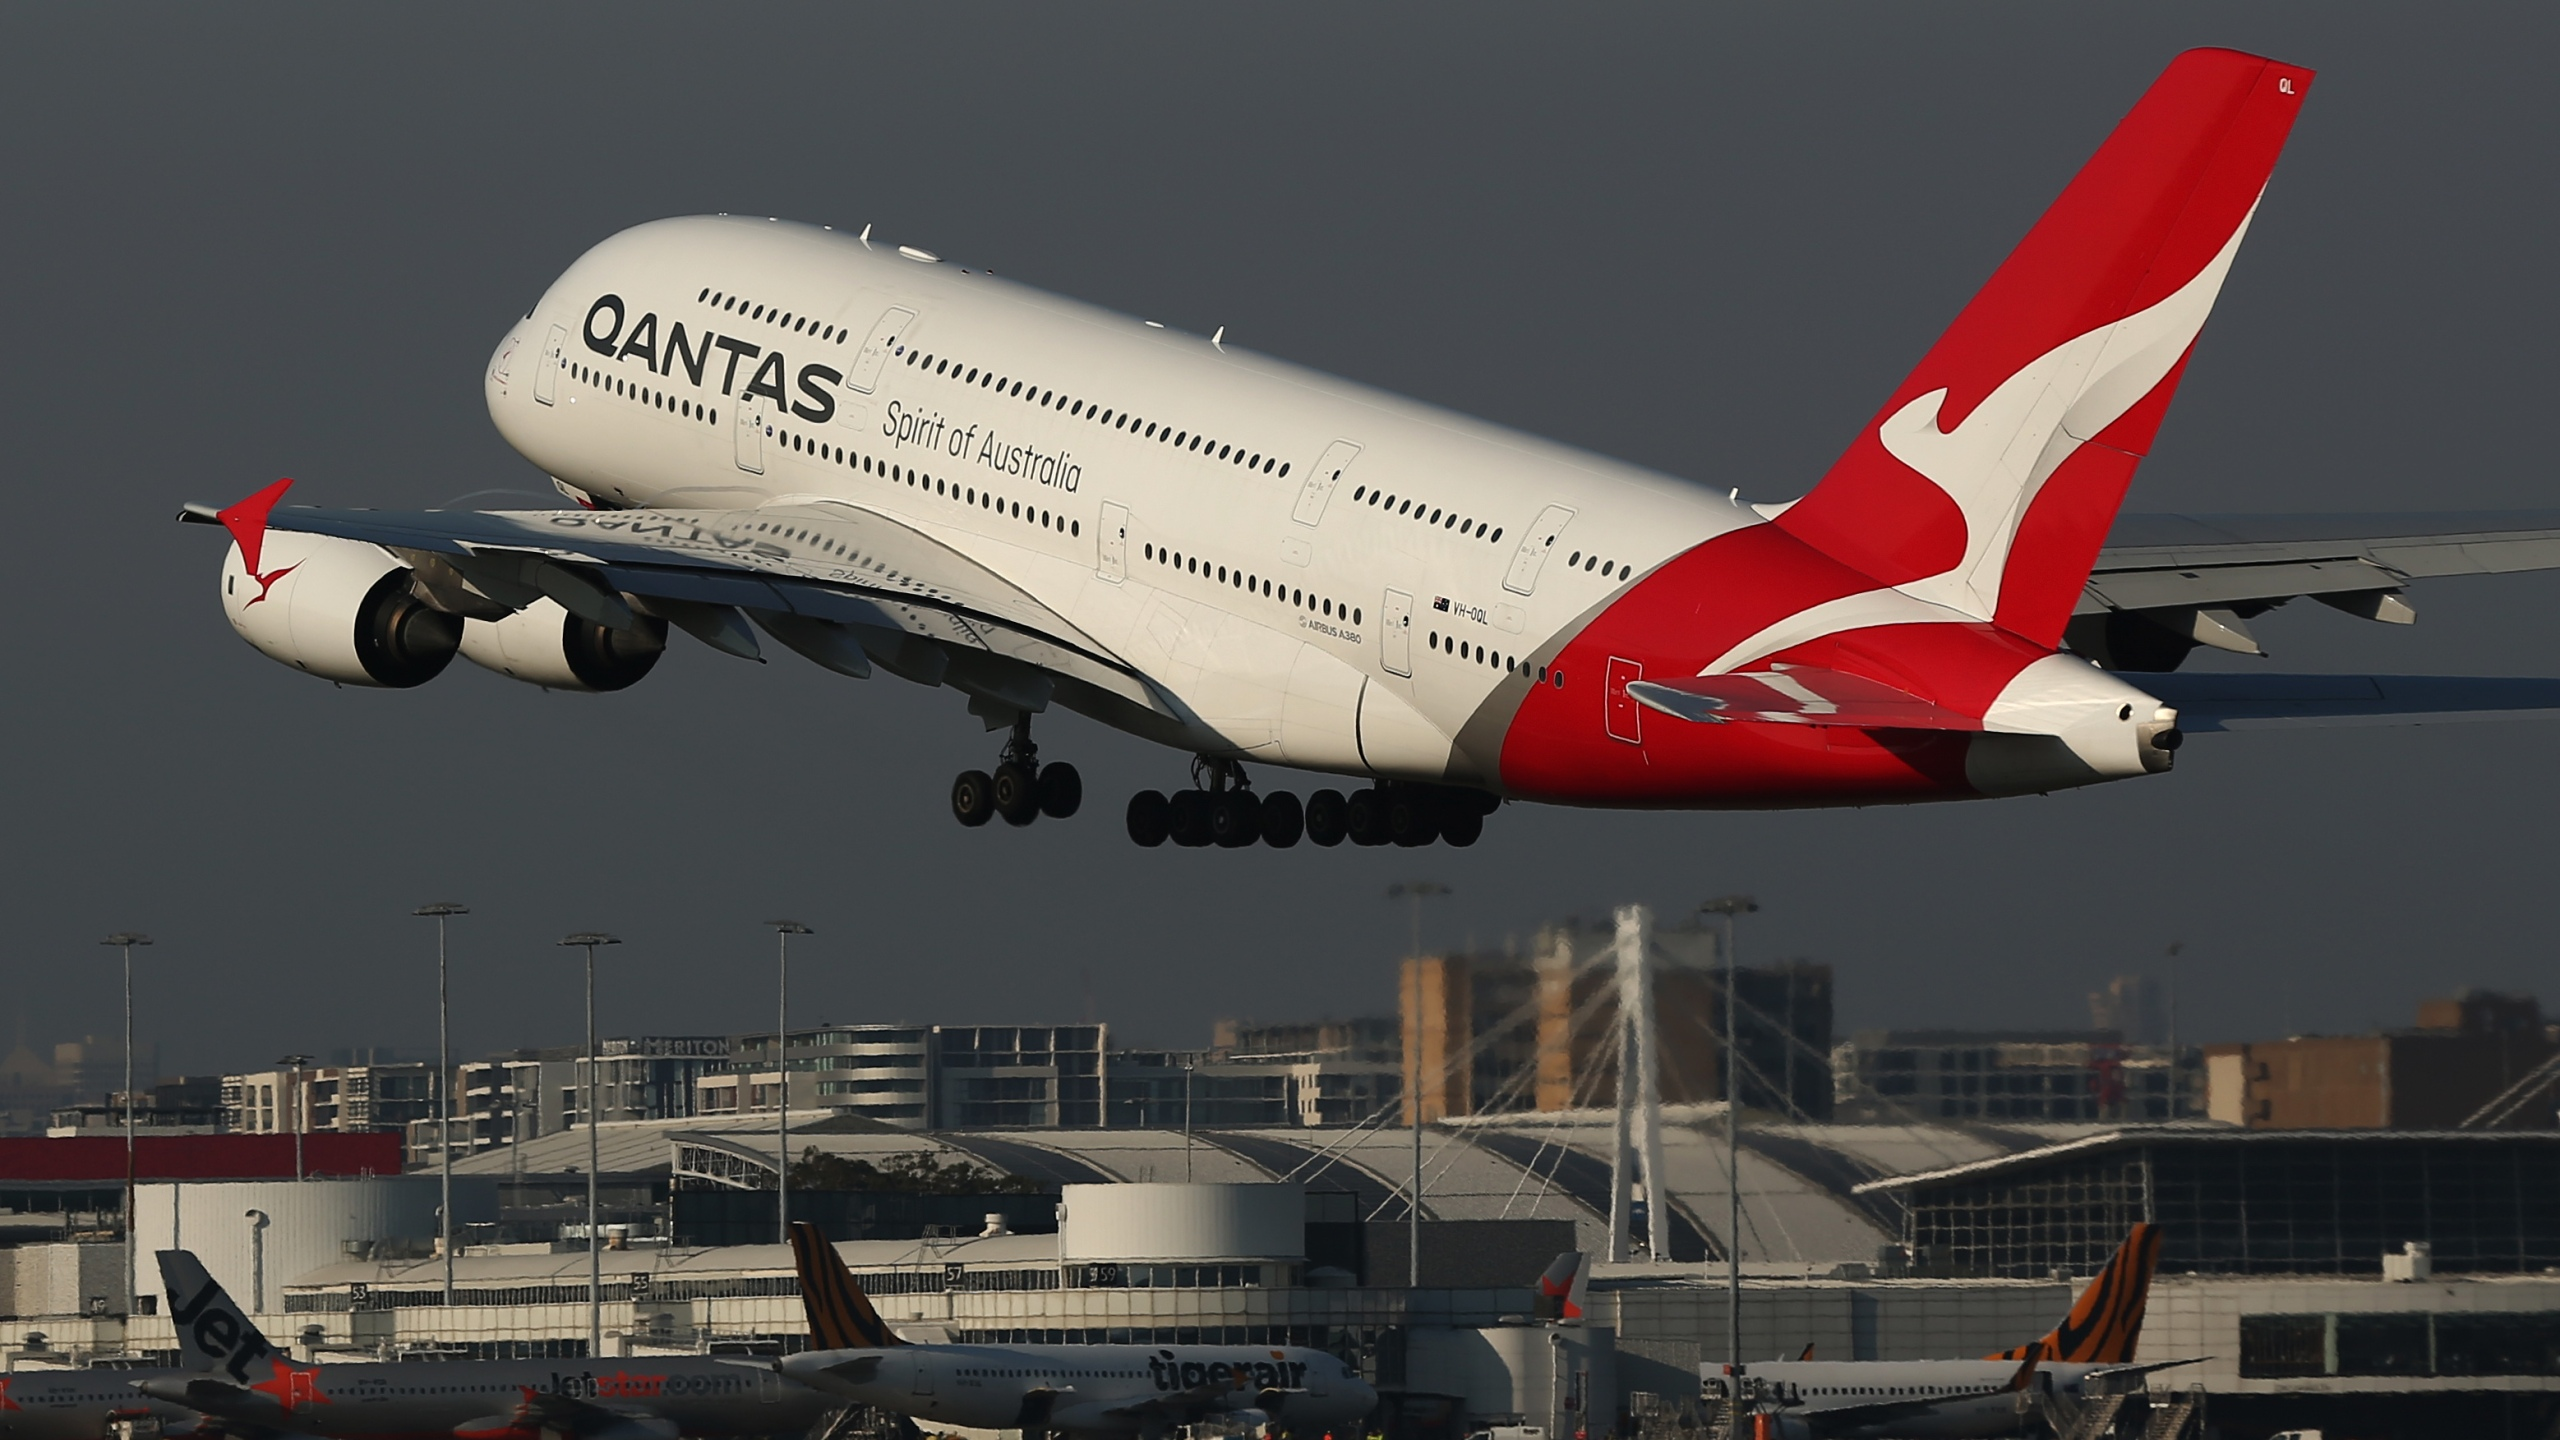 A Qantas A380 plane takes off from Sydney Airport on October 31, 2019. (Credit: Brendon Thorne/Getty Images)